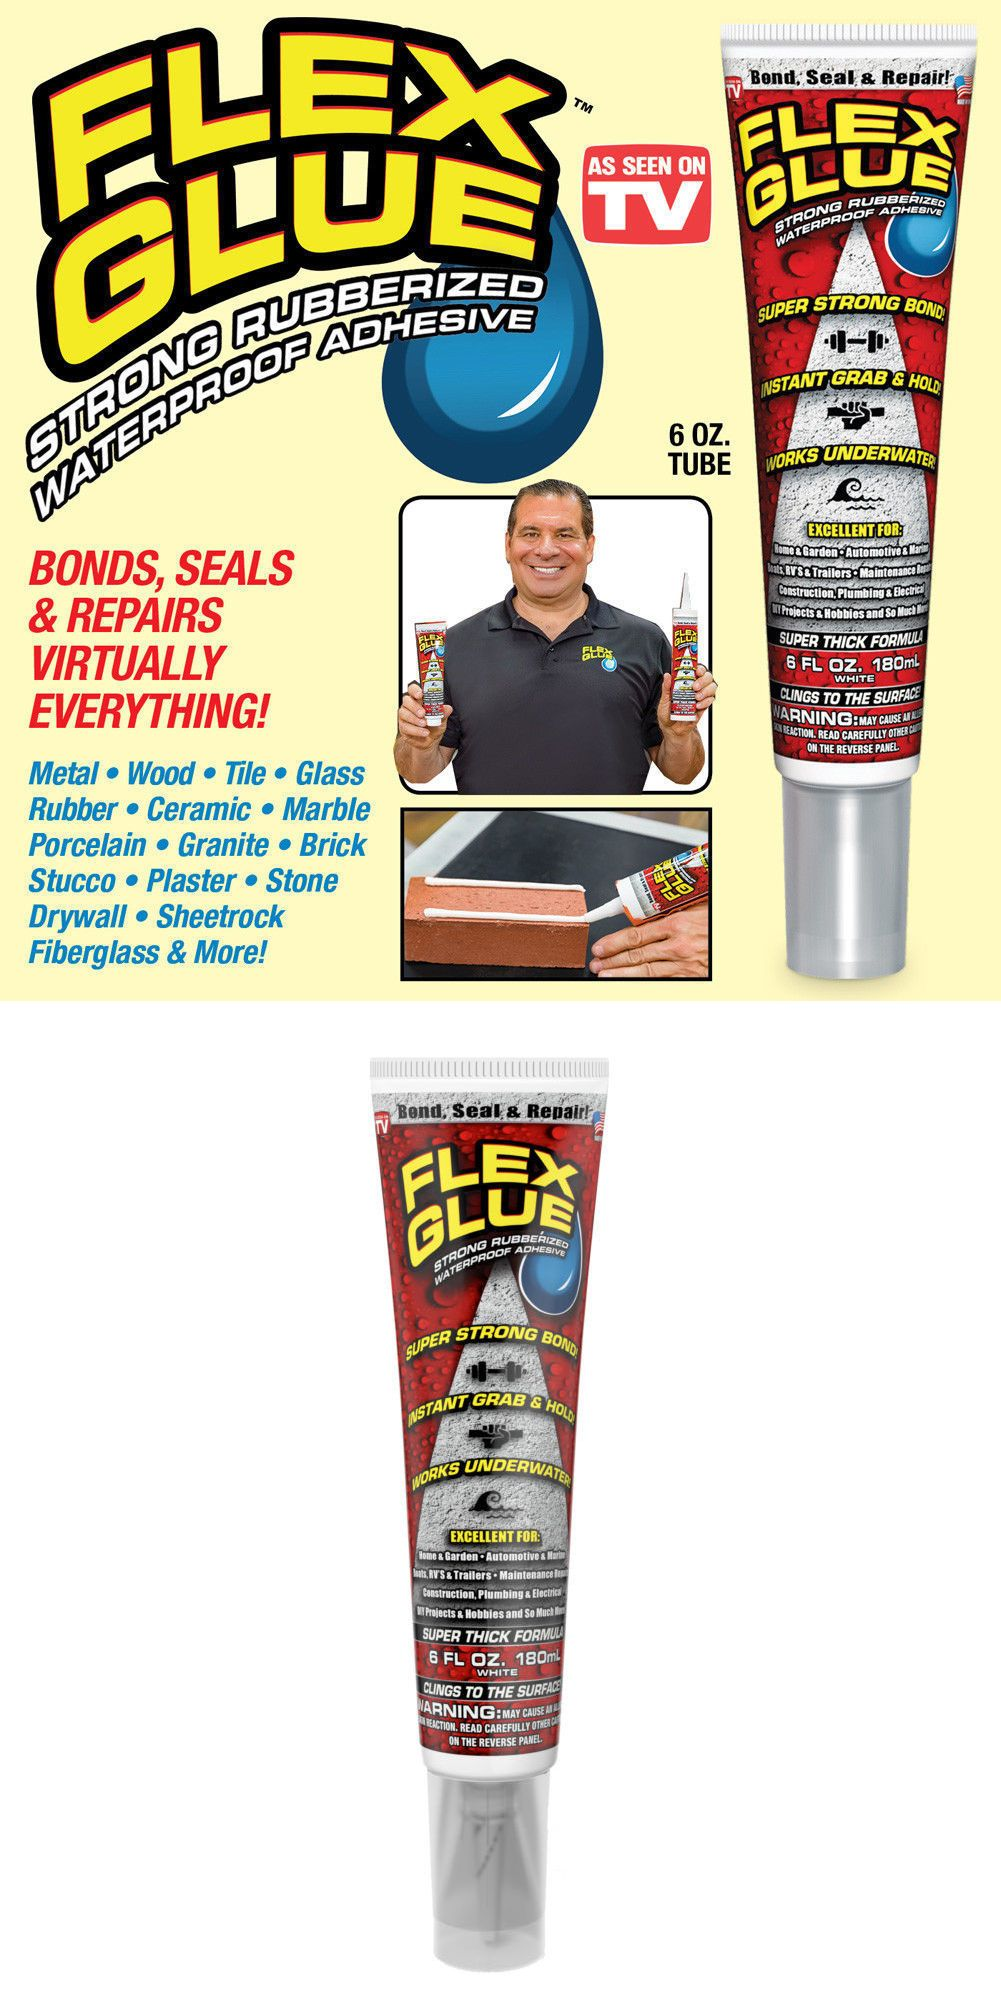 Glues And Pastes 161586 Flex Glue Strong Rubberized Waterproof Adhesive W Instant Grab 6 Oz Tube Buy It Now On Adhesive Glues